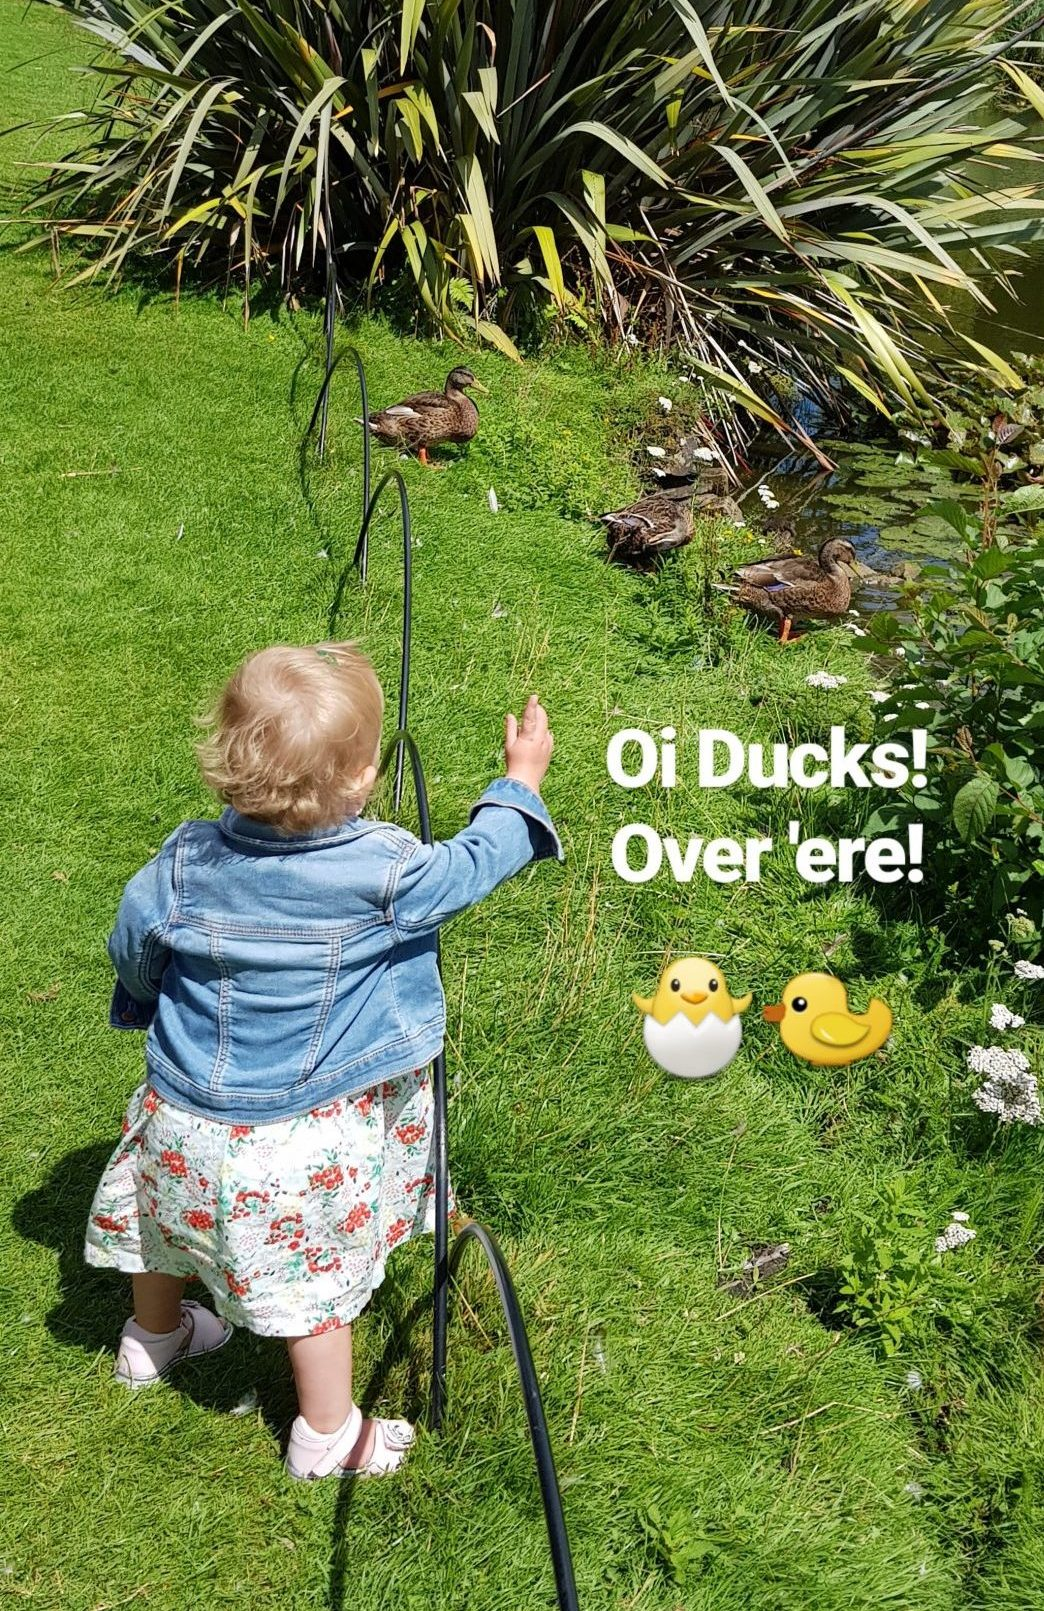 little girl pointing to ducks